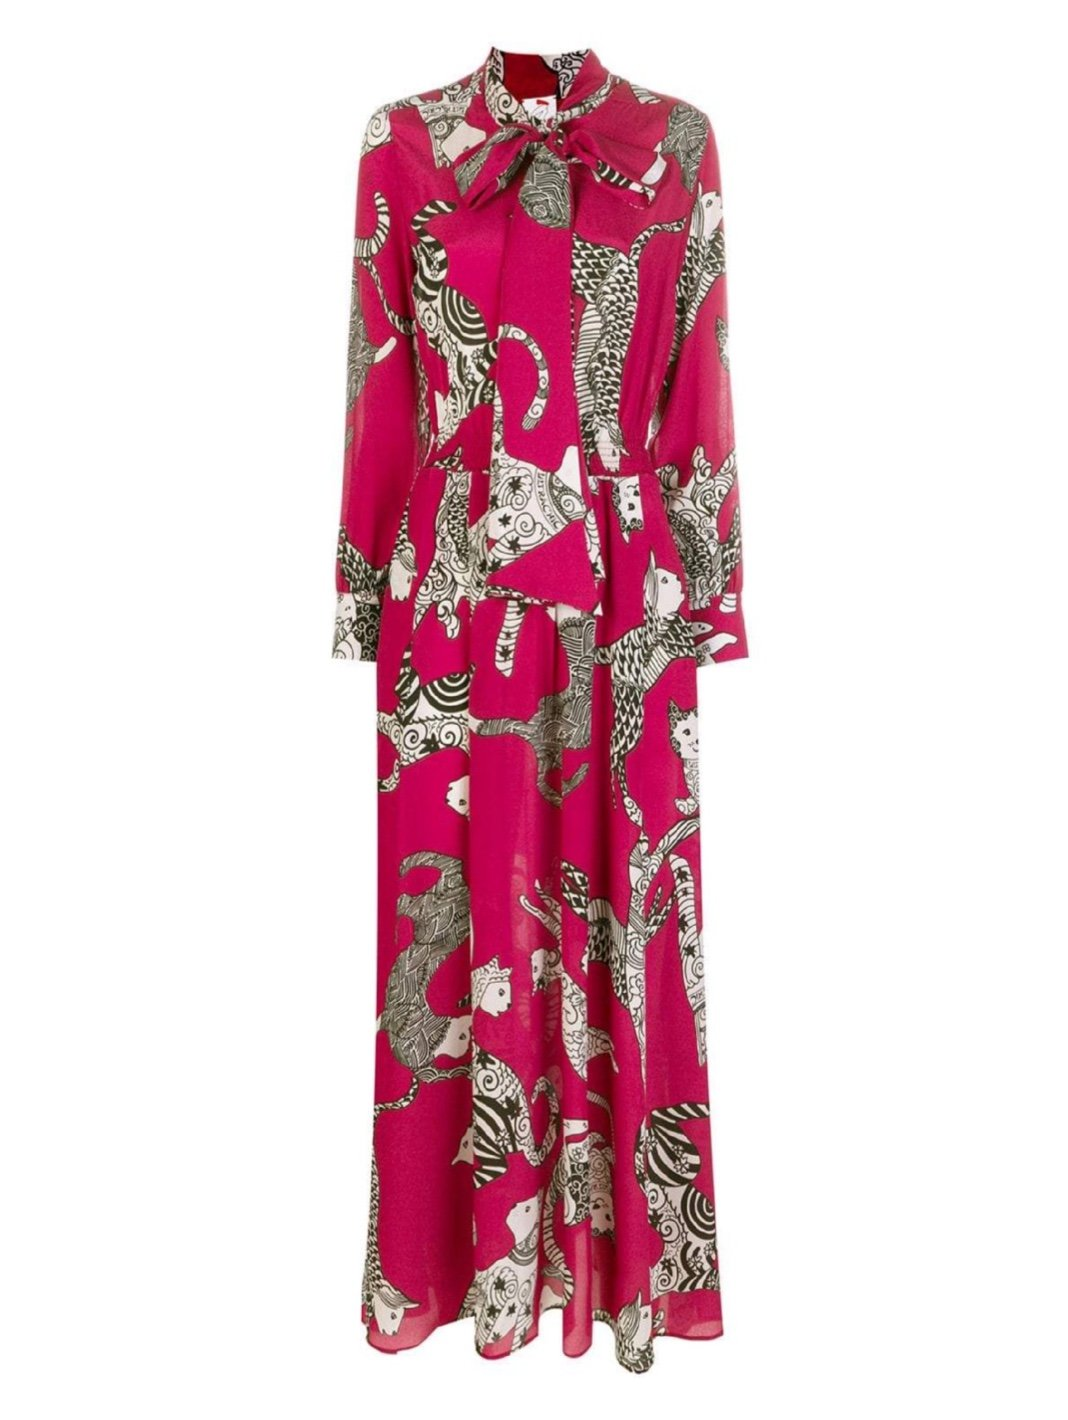 Cats Print Bow Silk Dress - The Bobby Boga